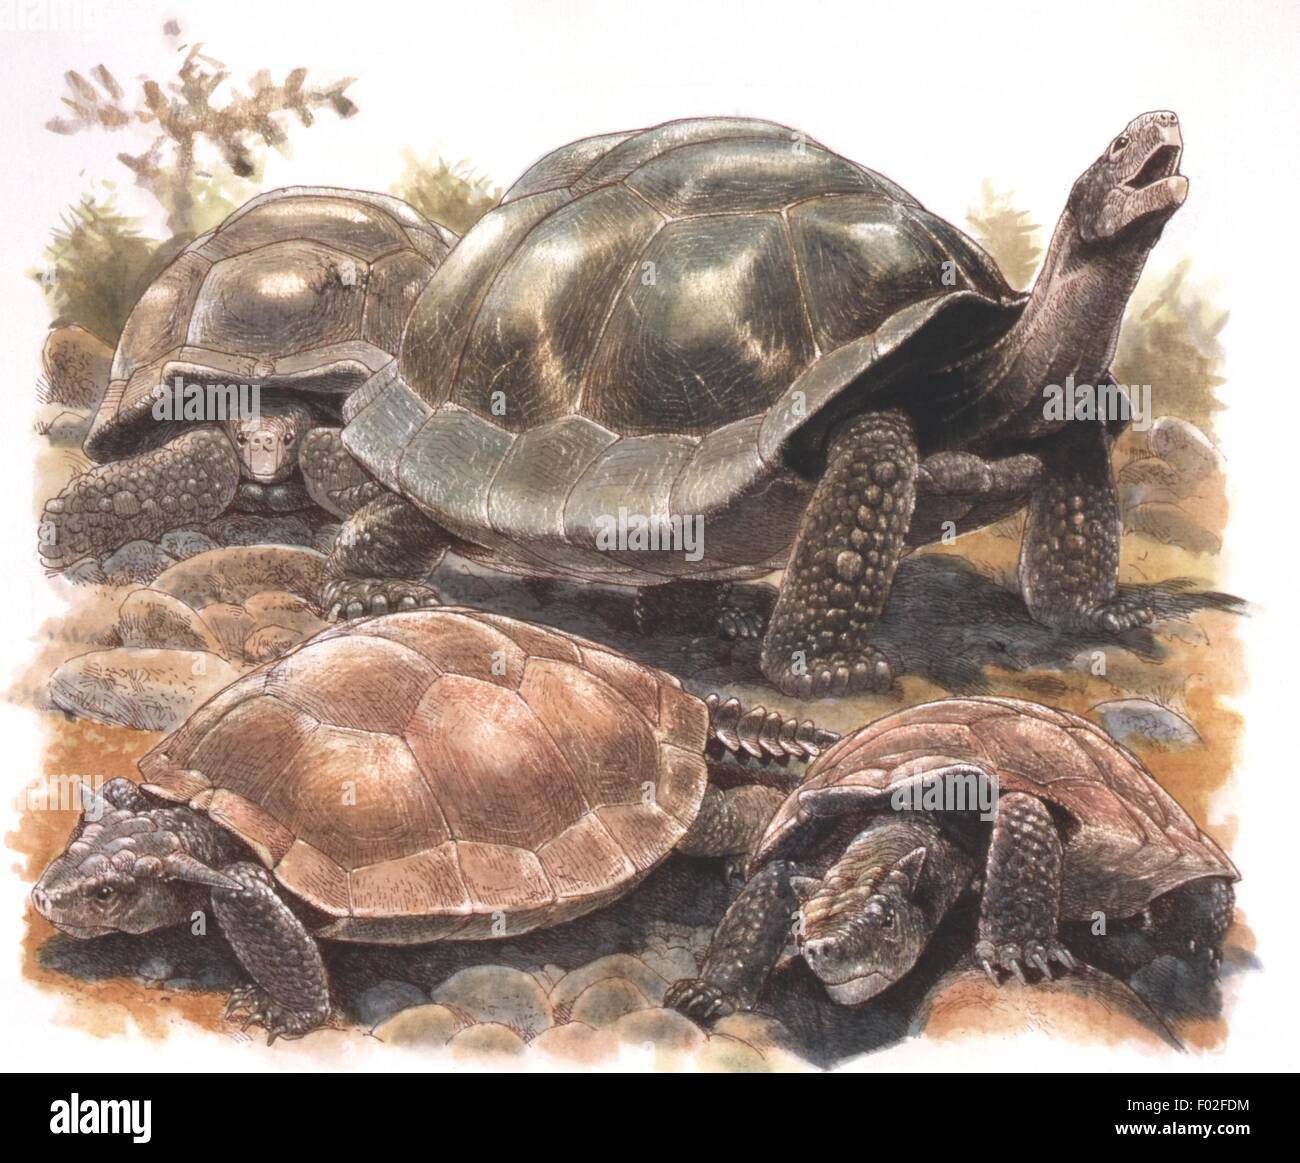 Zoology - Reptiles - Tortoises (Chelons) - Art work by J. Robins - Stock Image